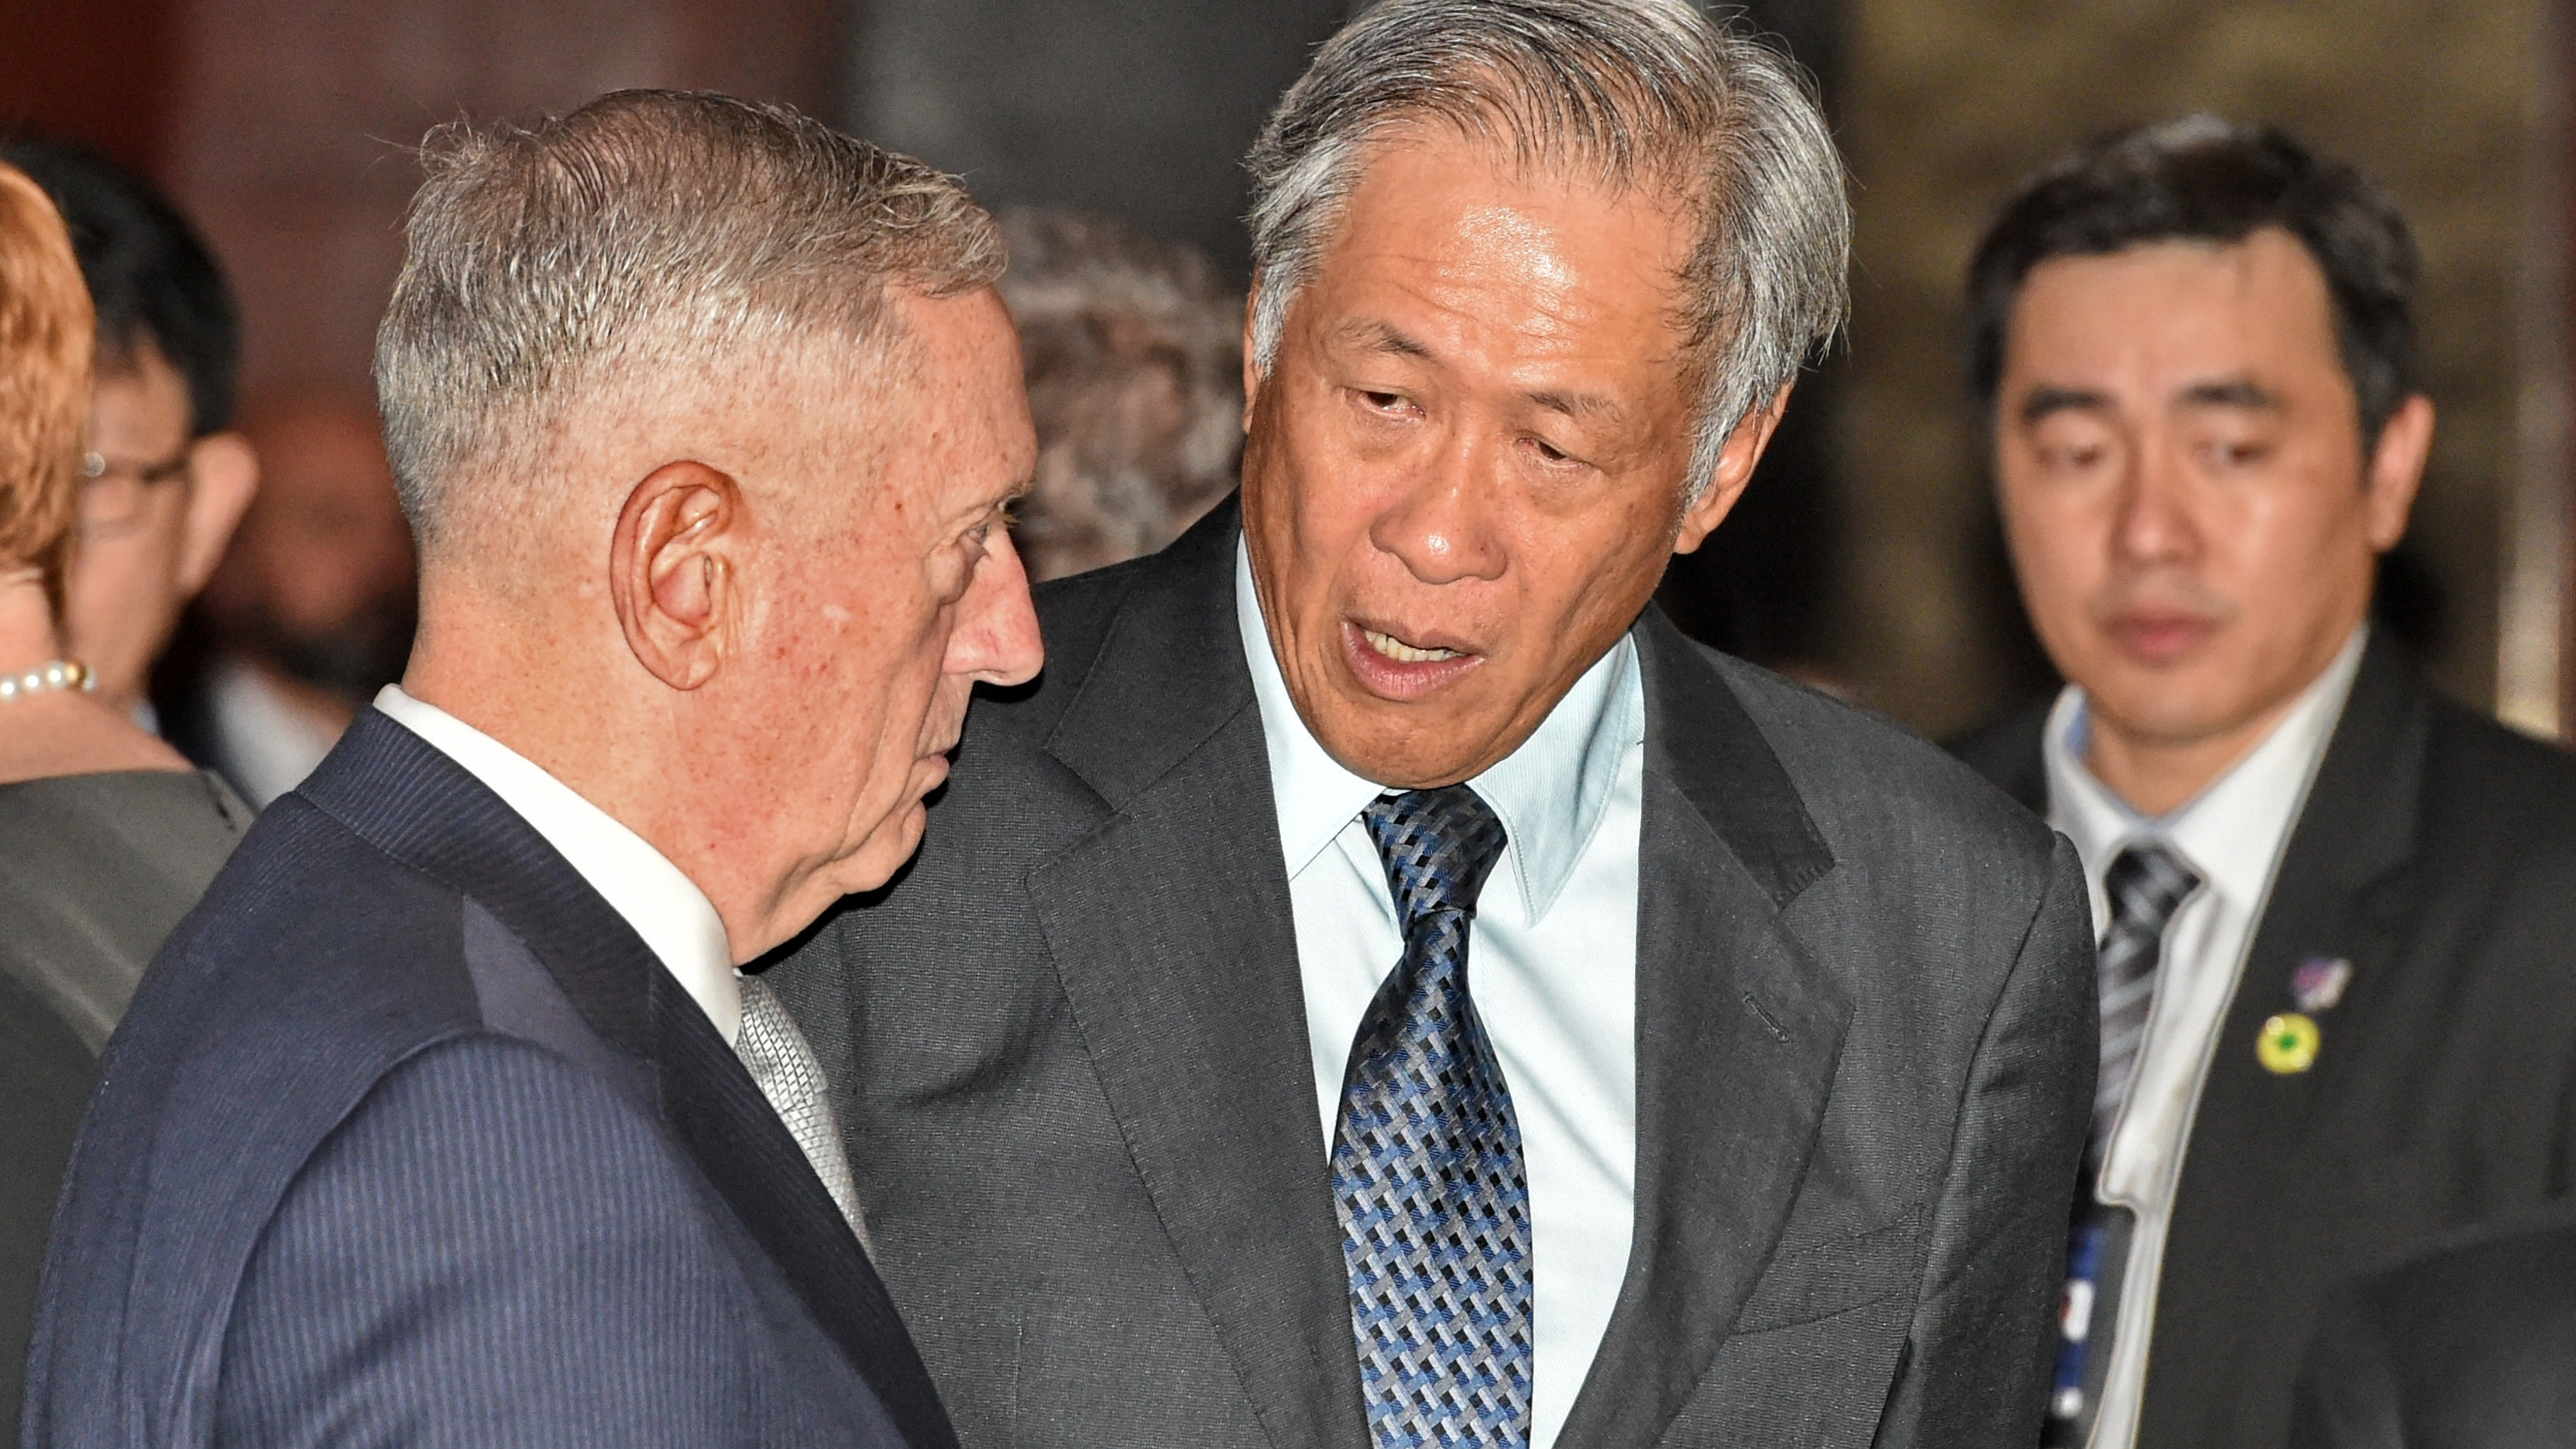 US Defense Secretary Mattis to deliver 'punchy' address at Asia security summit